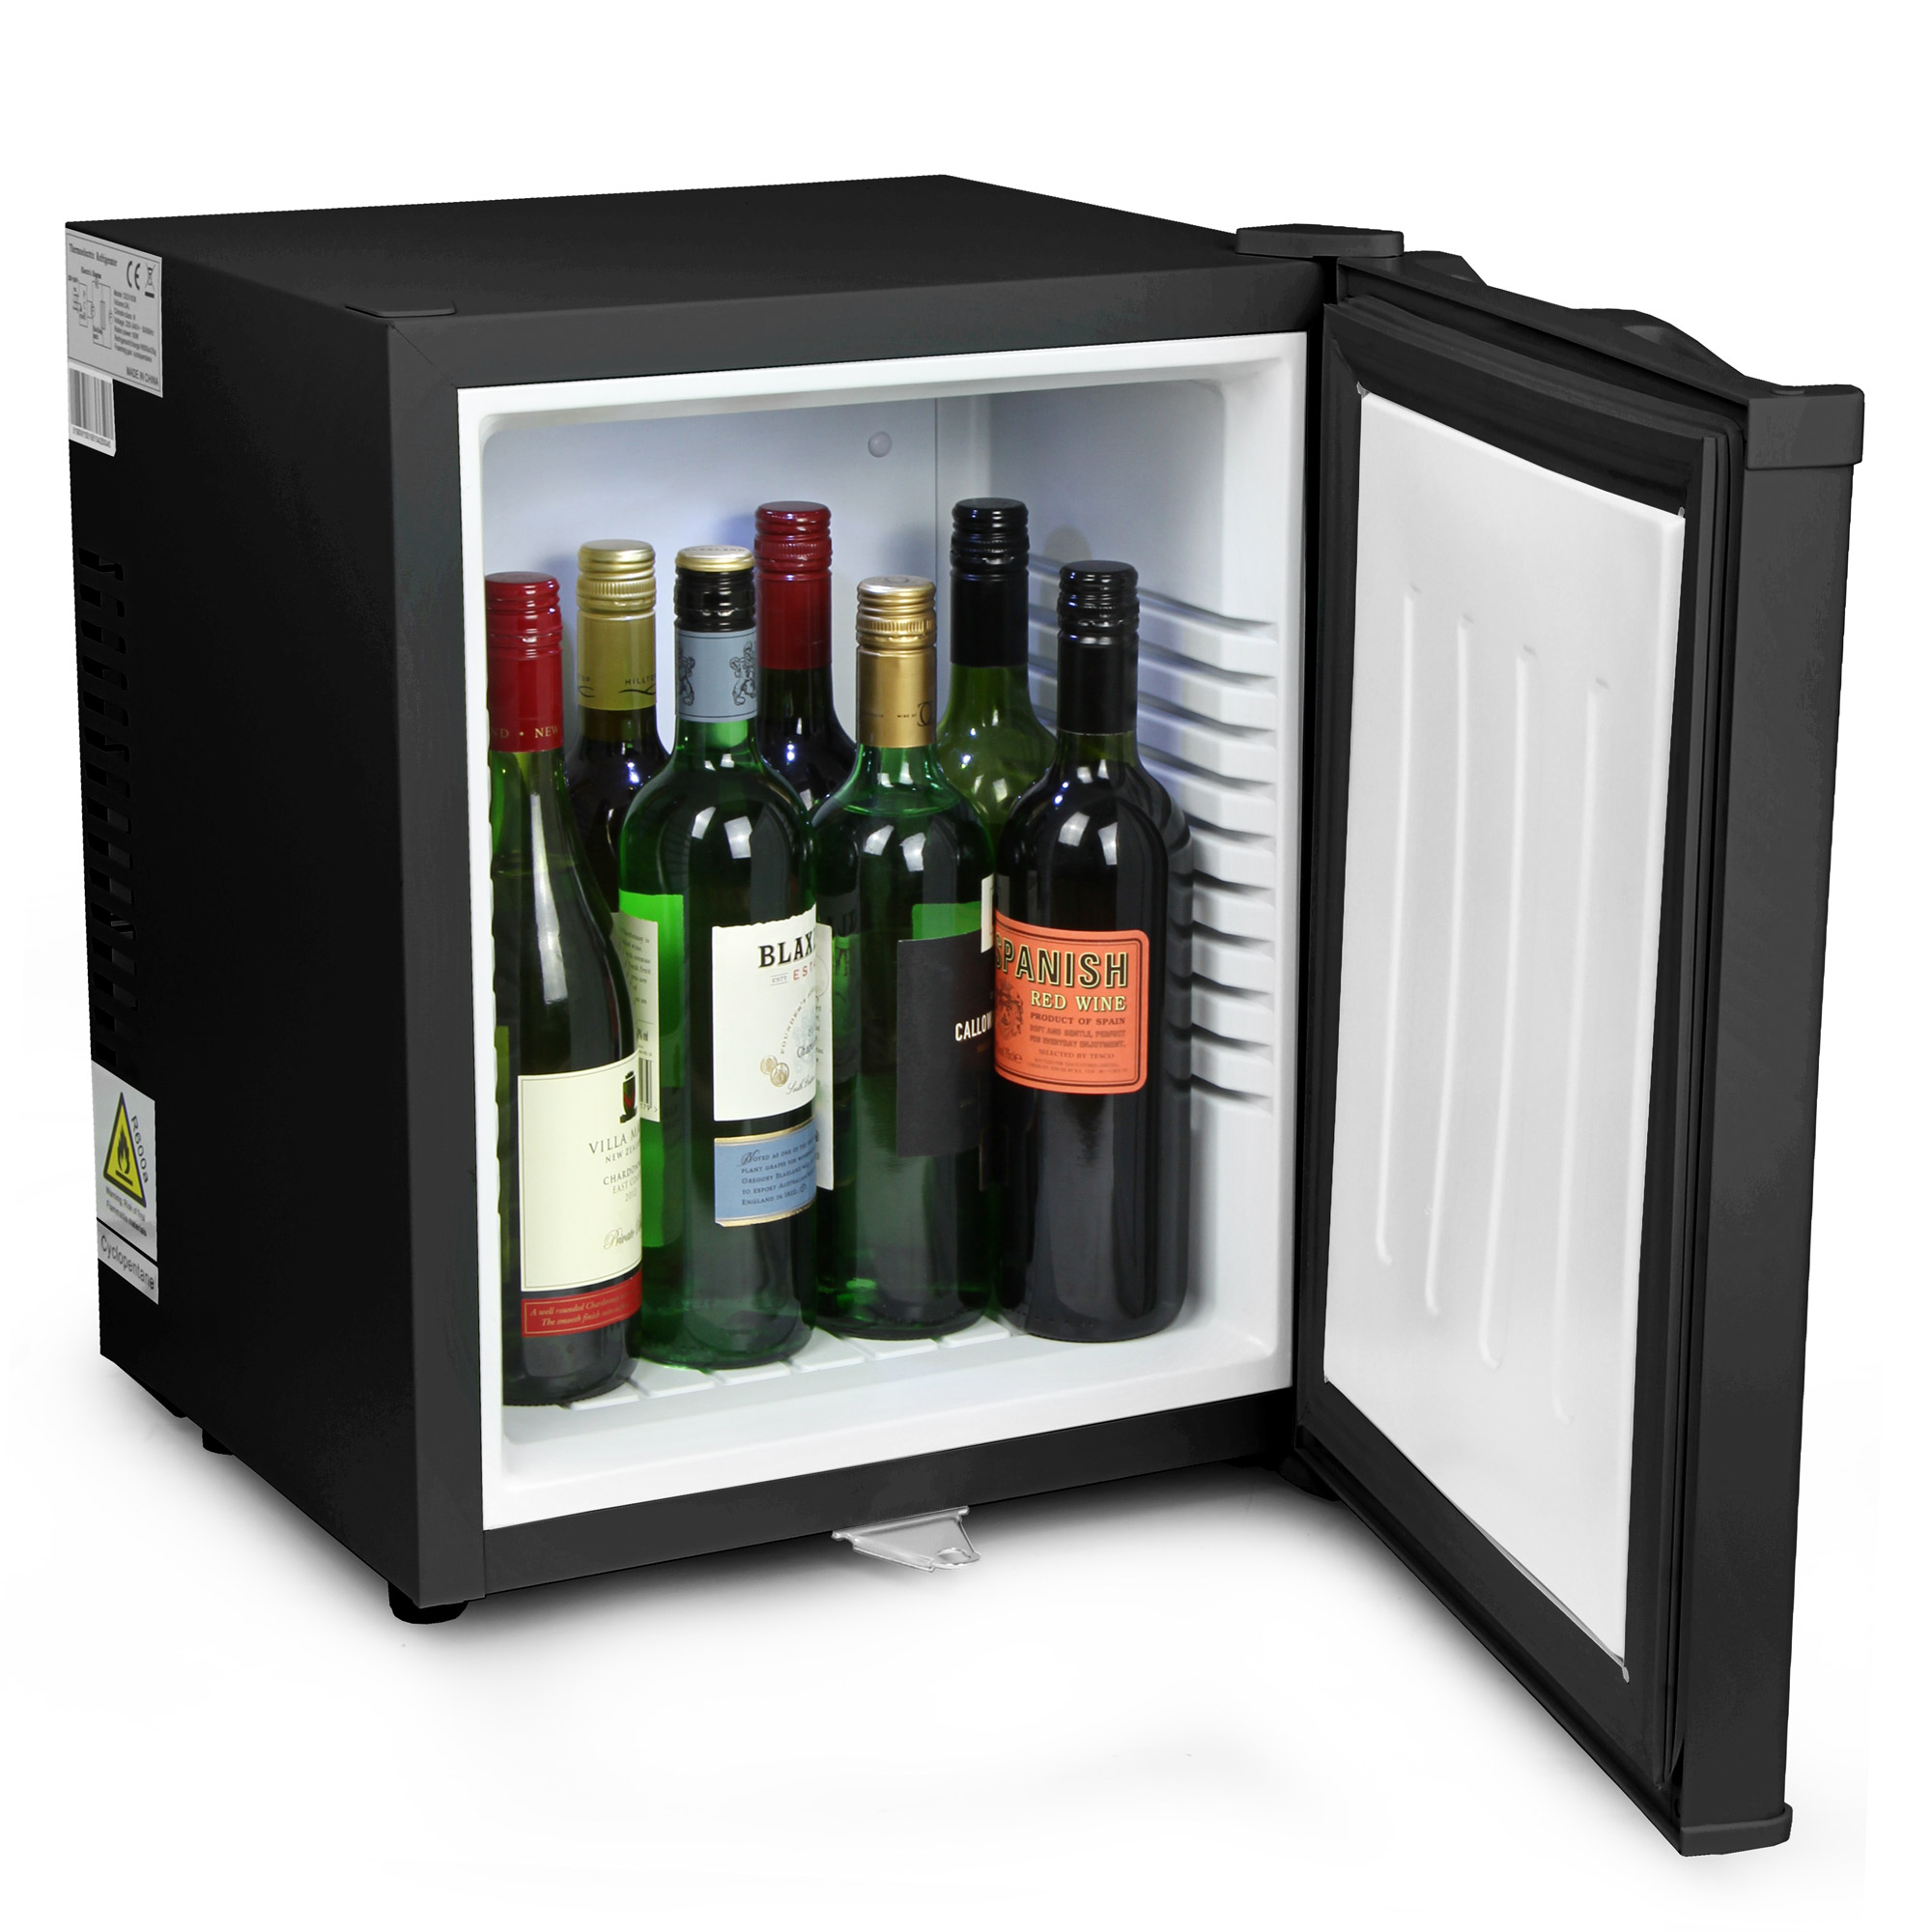 Kuche Bar Fridge Review Chillquiet Silent Mini Fridge 24ltr Black With Lock